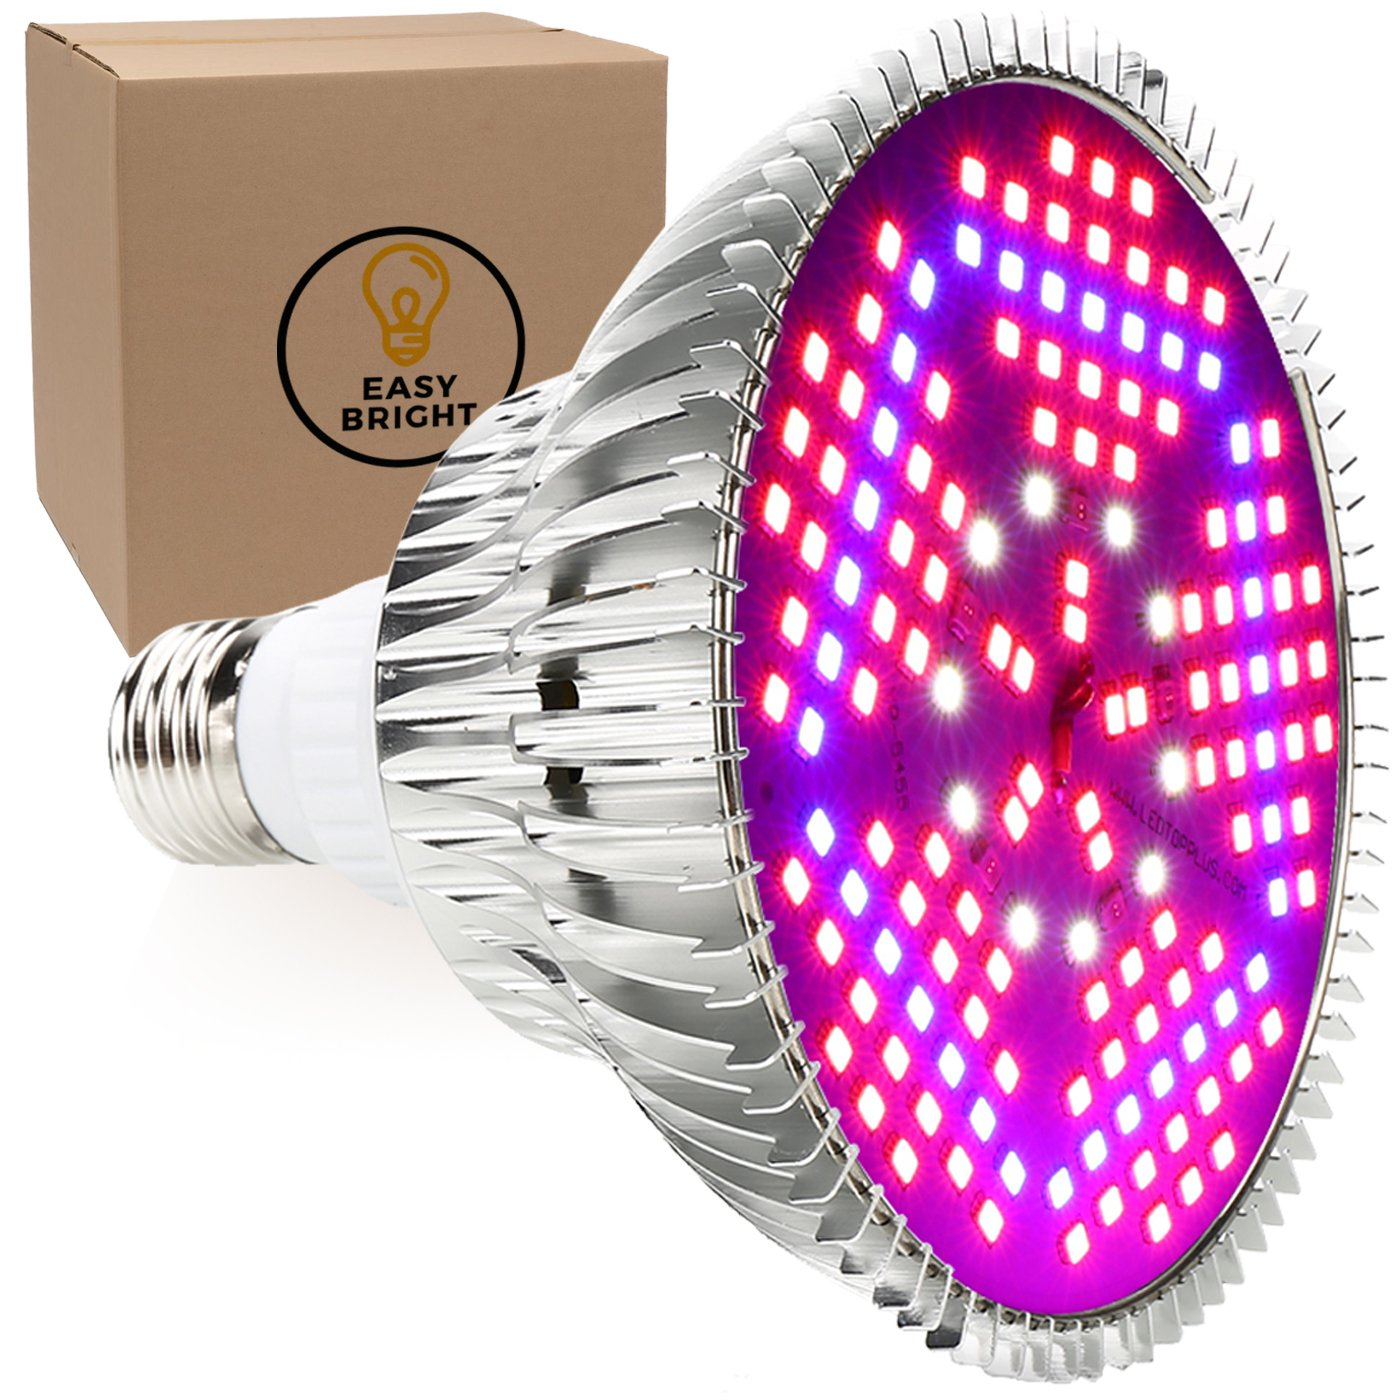 100W LED Grow Light Bulb - Full Spectrum Lamp for Indoor Plants, Garden, Flowers, Vegetables, Greenhouse & Hydroponic Growing, E27 Base with 150 LED's (AC85-265V) by Easy Bright